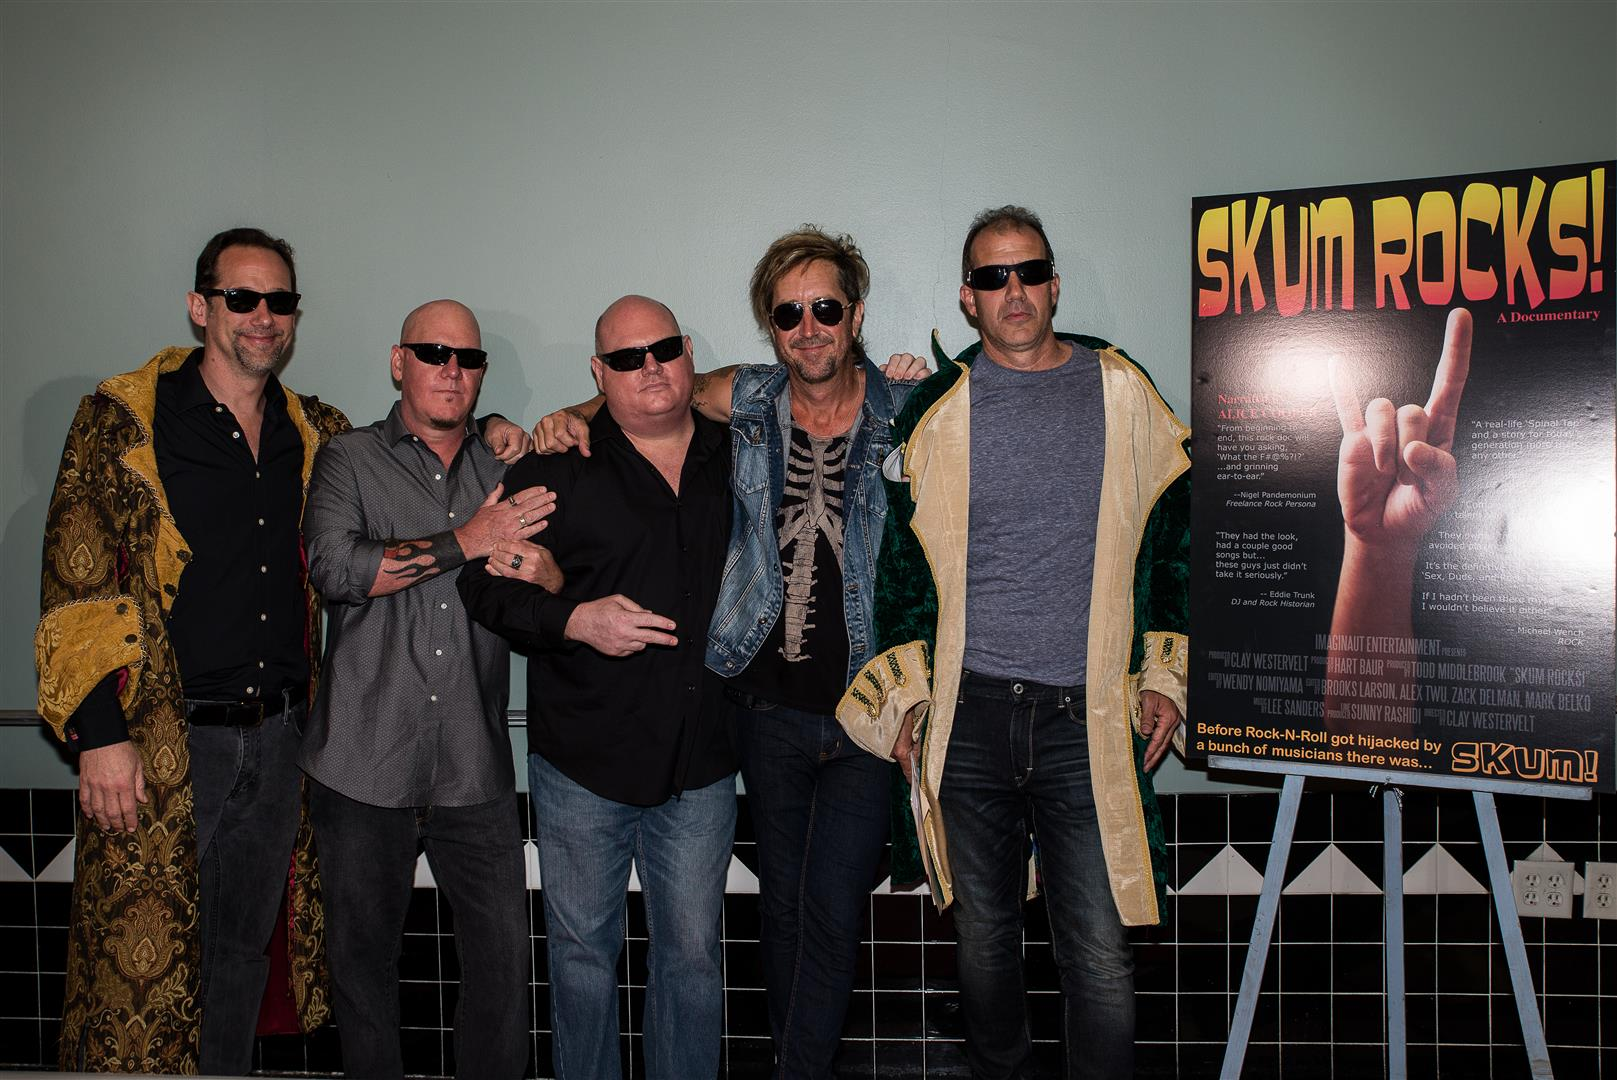 SKUM'S RED CARPET MOVIE EVENT AT THE COLONY THEATER ON 03/05/2015